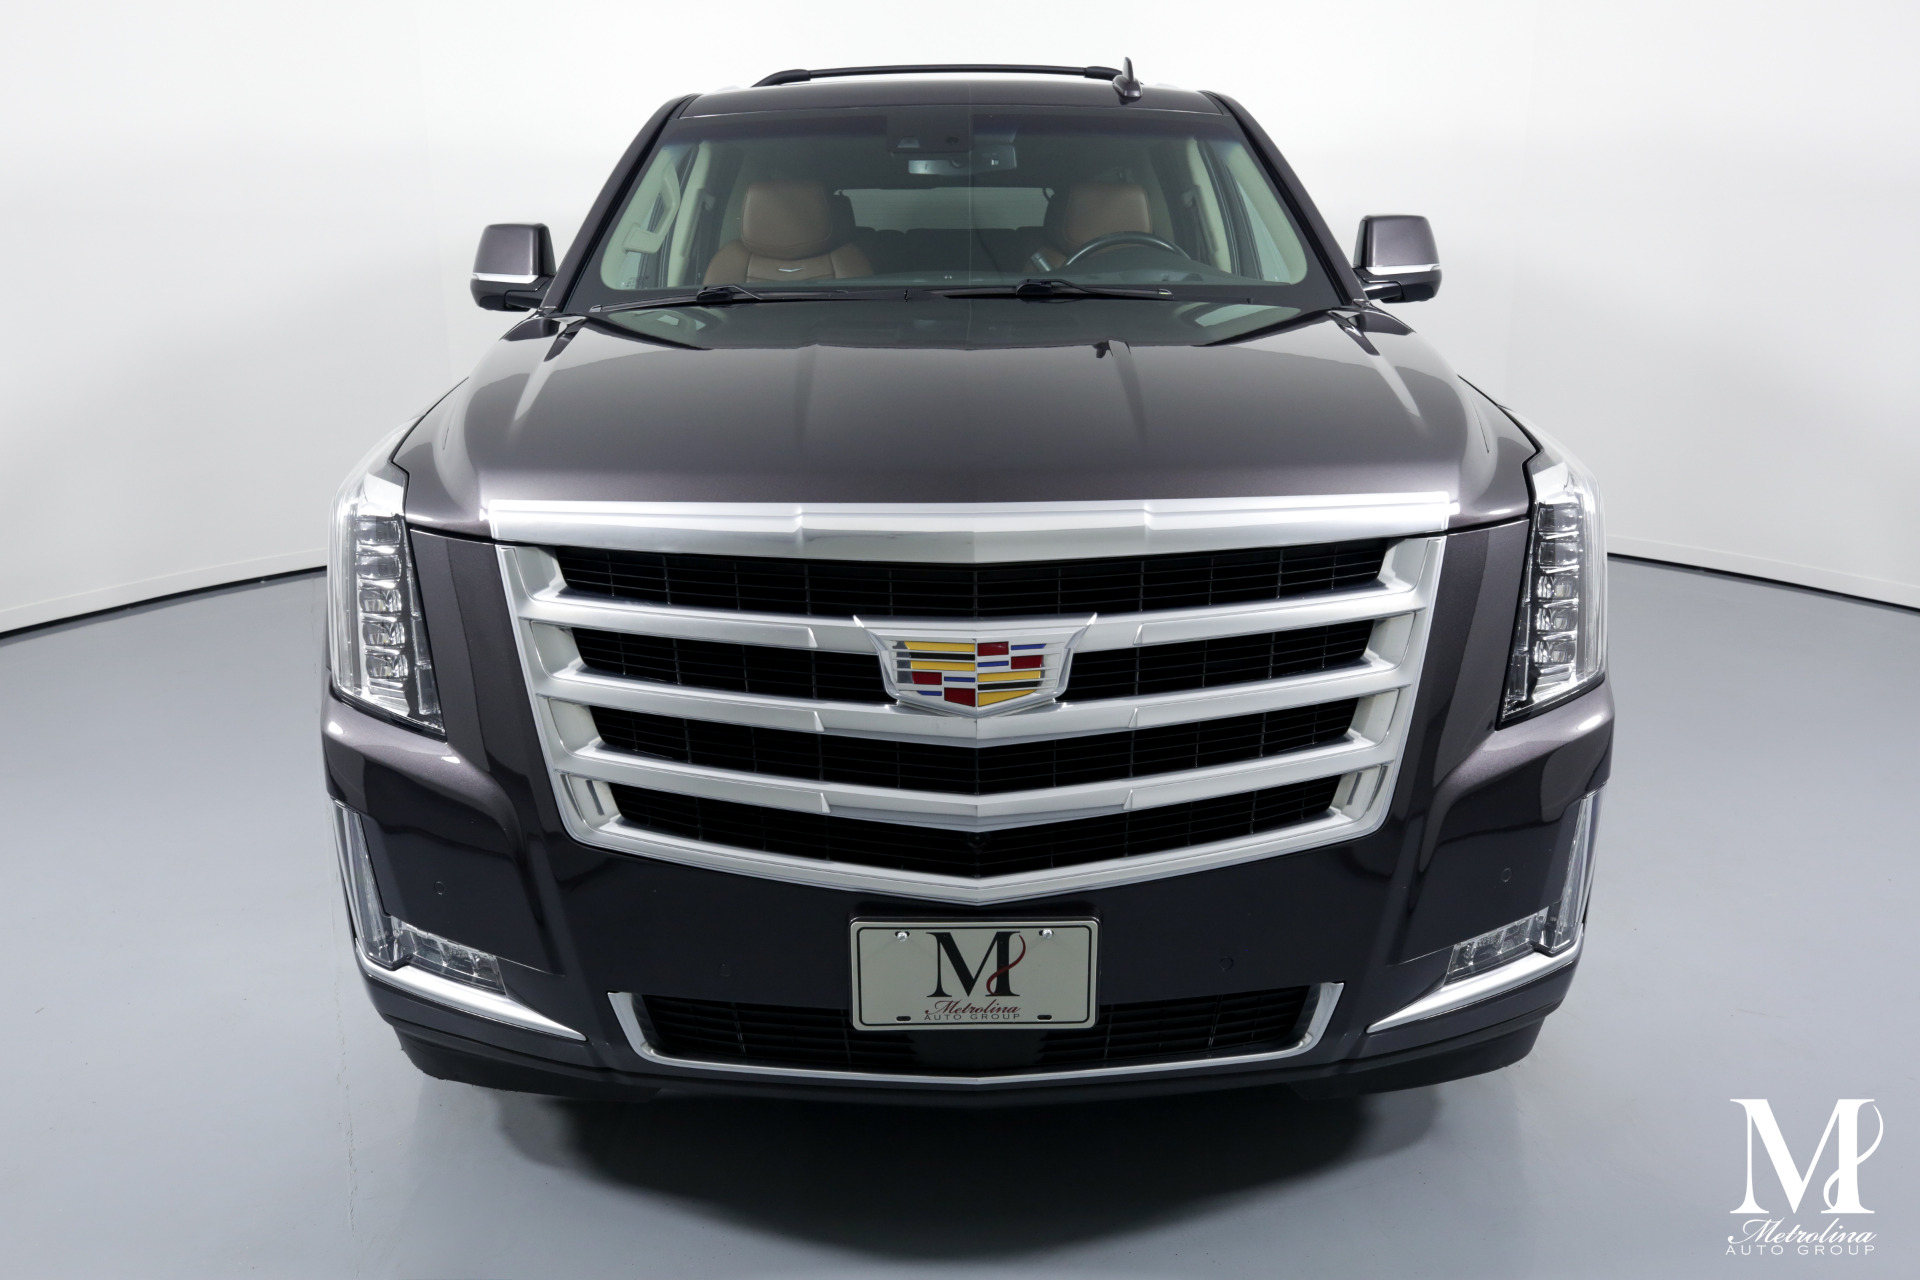 Used 2016 Cadillac Escalade ESV Premium Collection for sale $44,995 at Metrolina Auto Group in Charlotte NC 28217 - 3